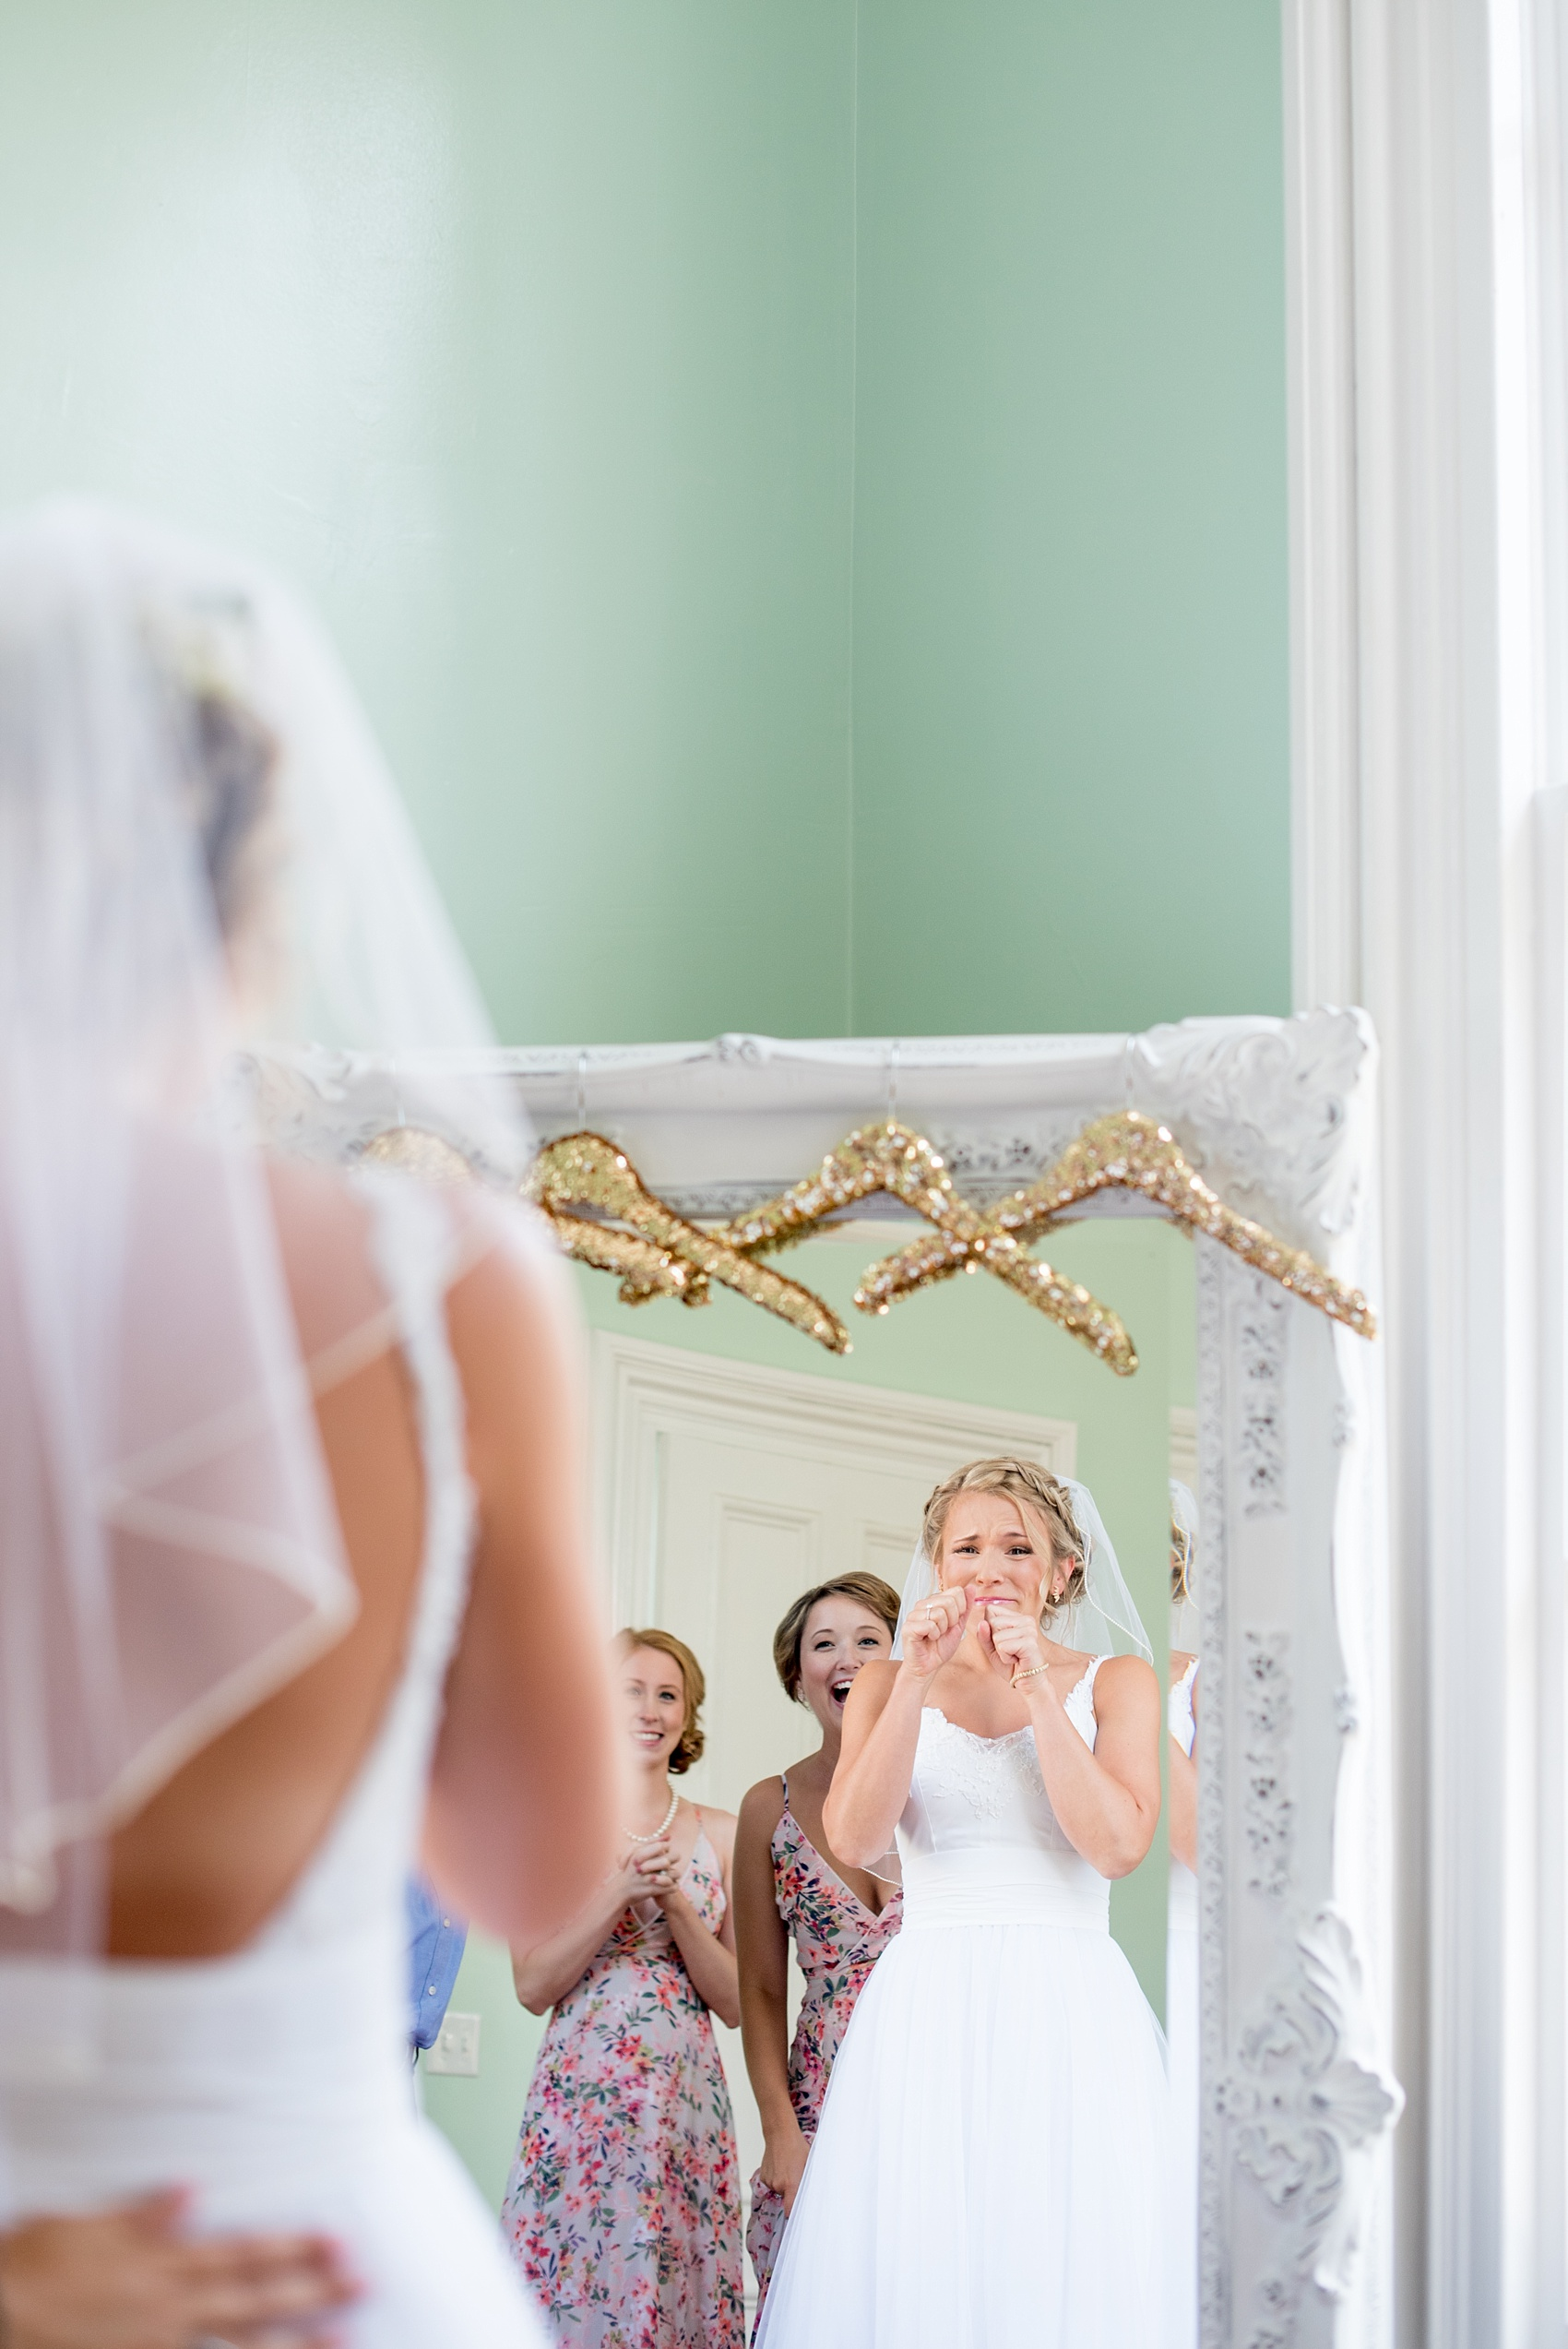 Mikkel Paige Photography wedding photos at The Merrimon-Wynne House in downtown Raleigh. The bride gets ready with her bridal party and sees herself in the mirror for the first time.